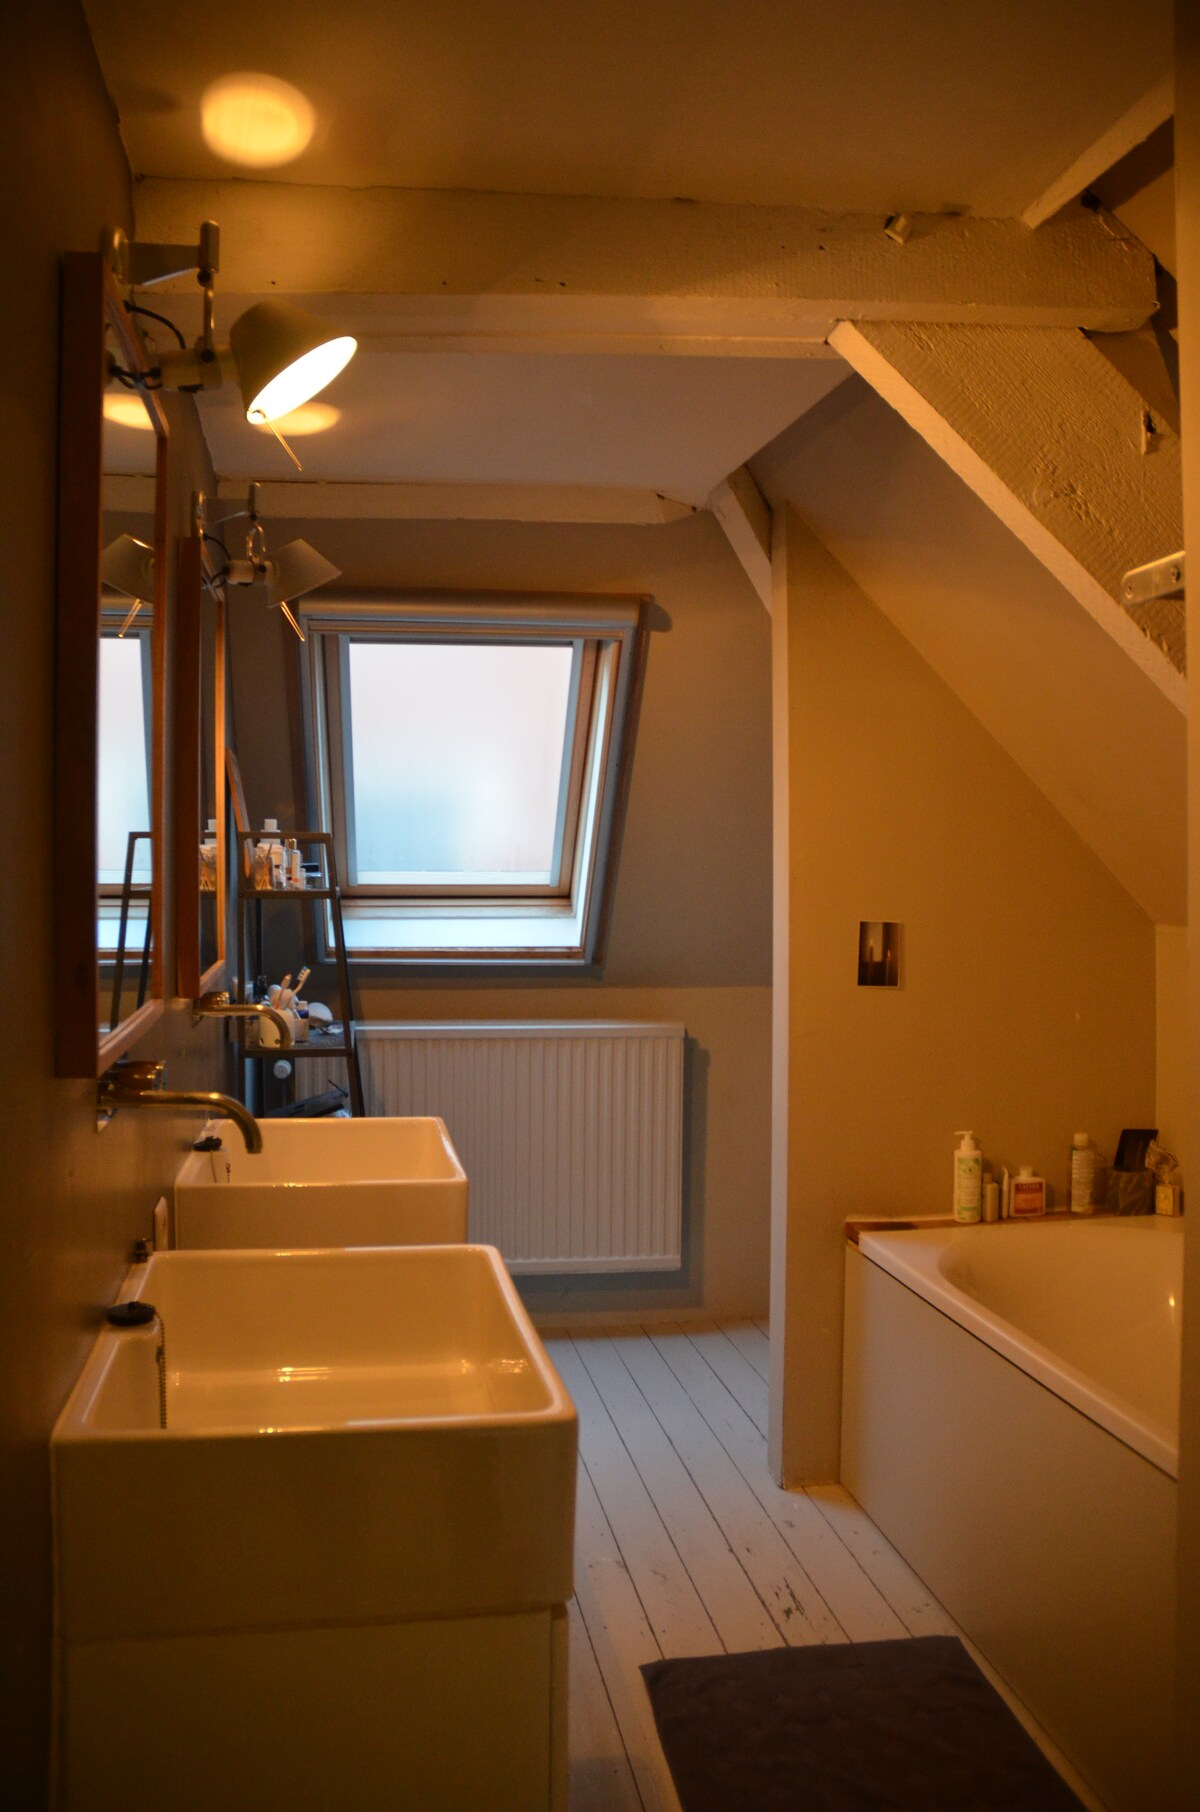 Bathroom with bath tub, shower and two sinks and behind another small/children room